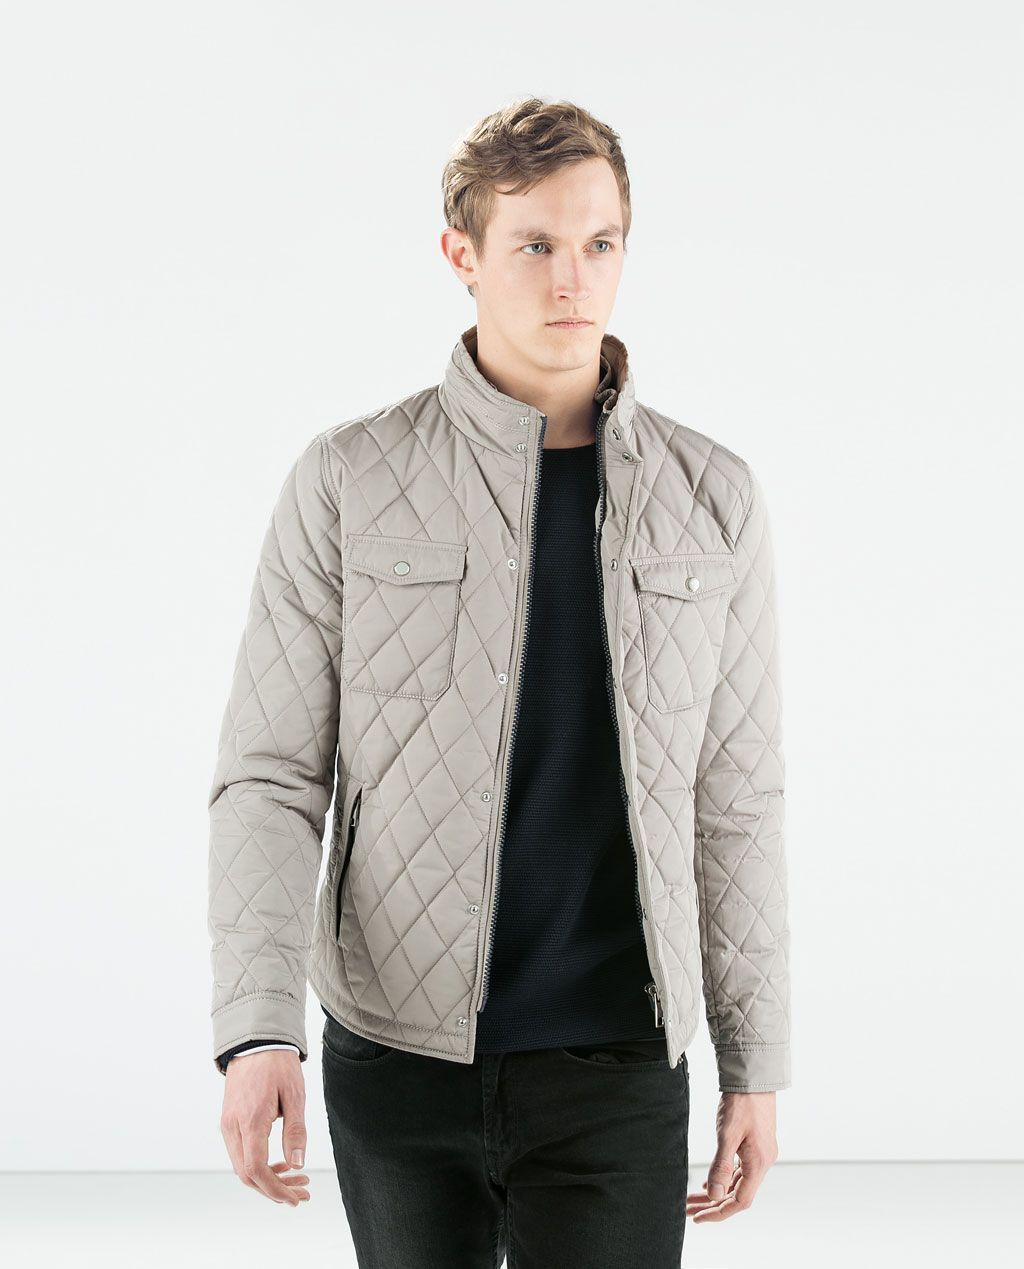 ZARA - COLLECTION SS15 - PADDED JACKET WITH BREAST POCKETS